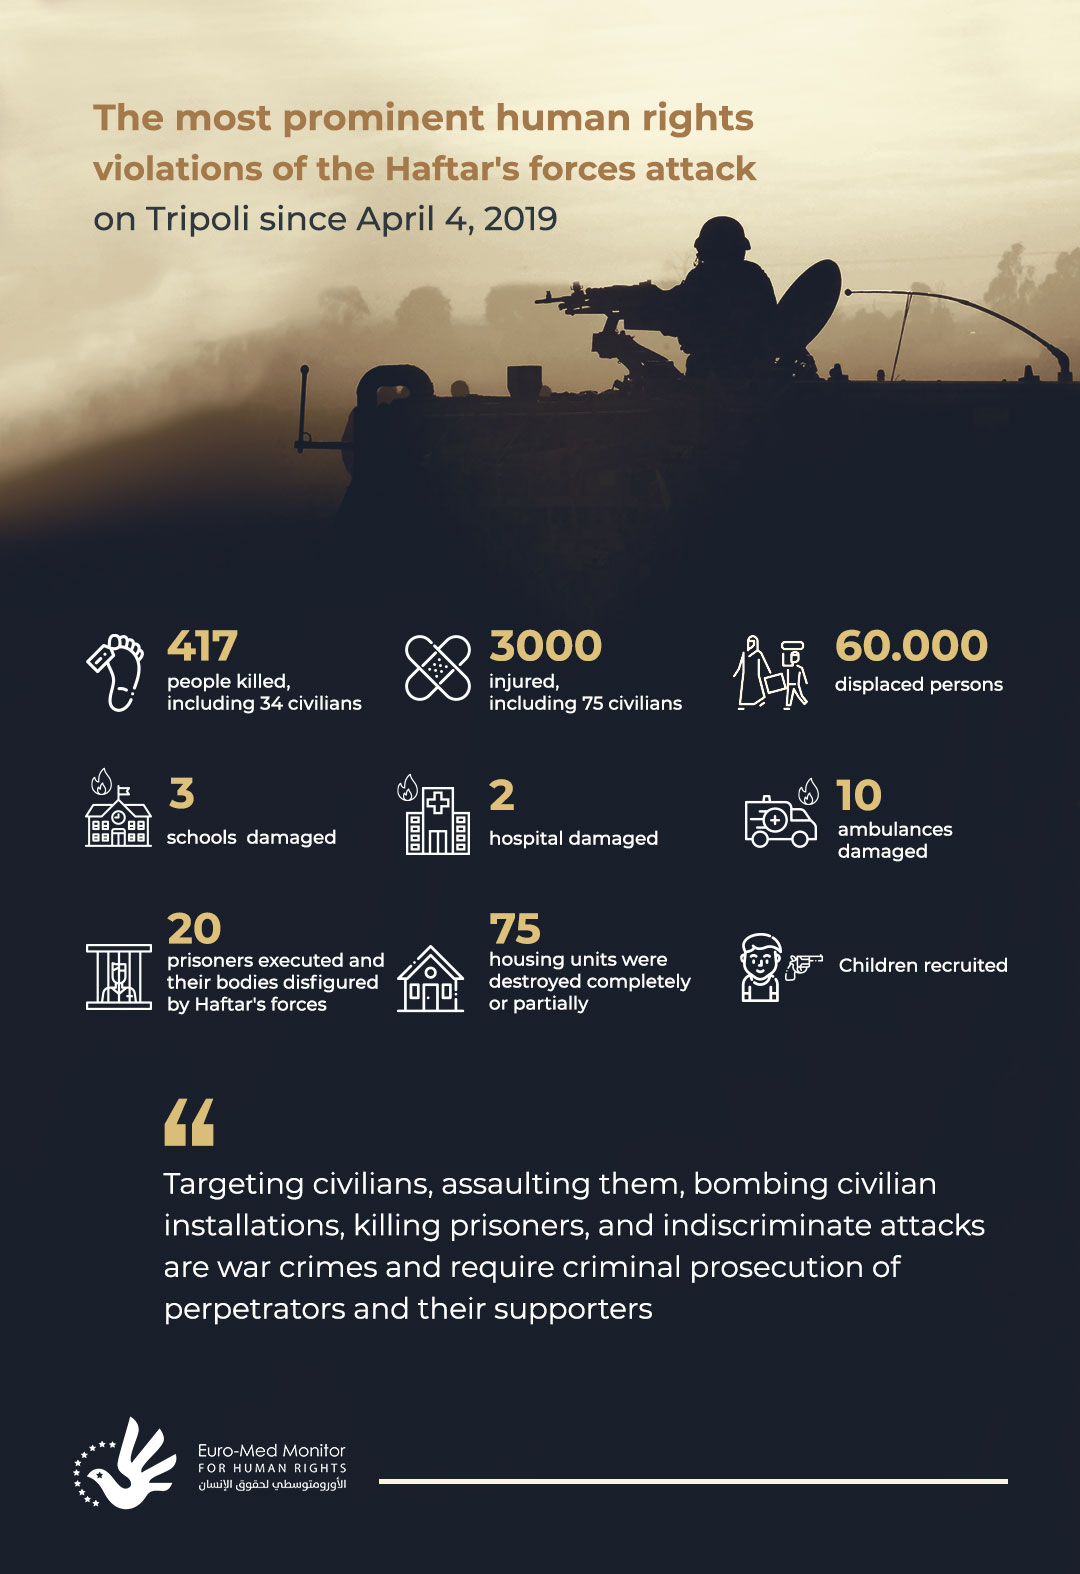 The most prominent human rights violations of the Haftar's forces attack on Tripoli since April 4, 2019